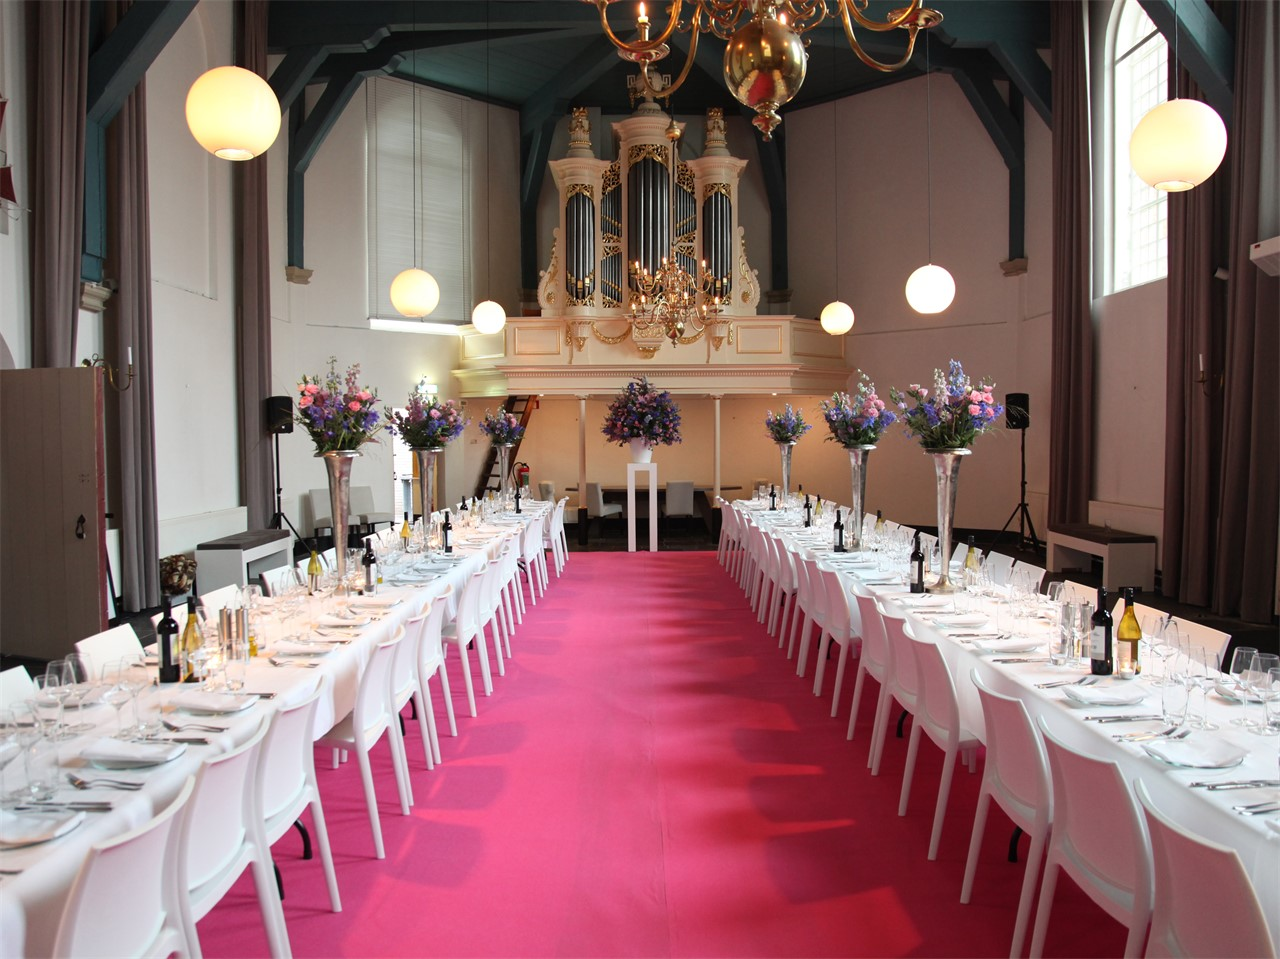 Klooster | events, art & design - Klooster | events, art & design